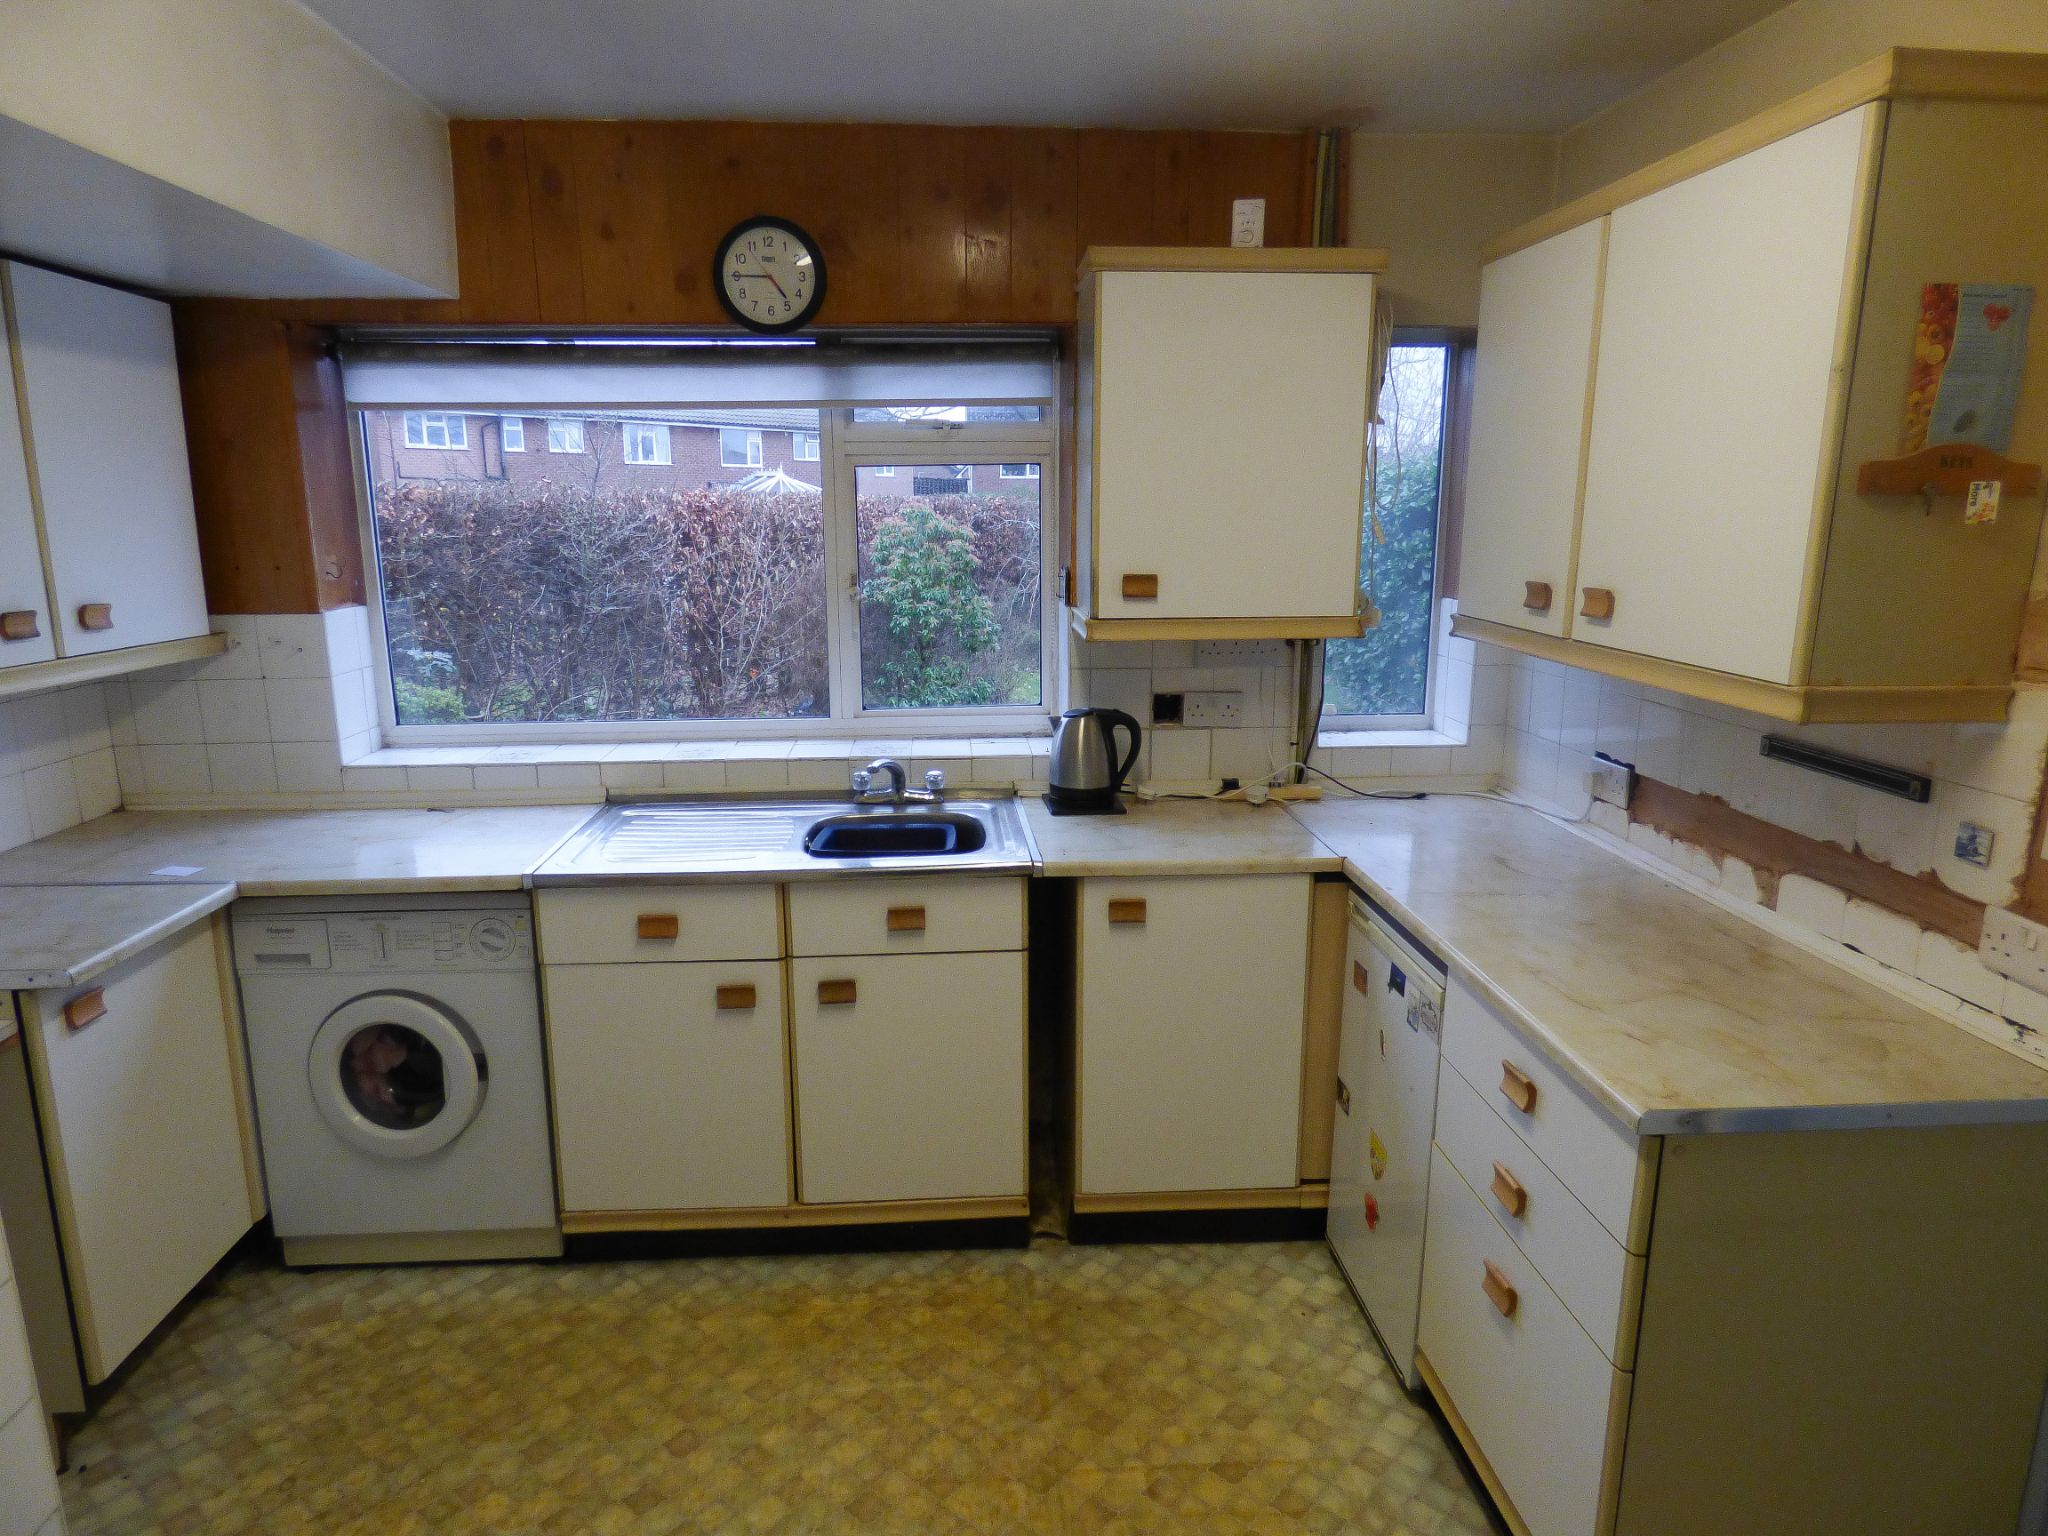 3 Bedroom Semi-detached House For Sale - 6